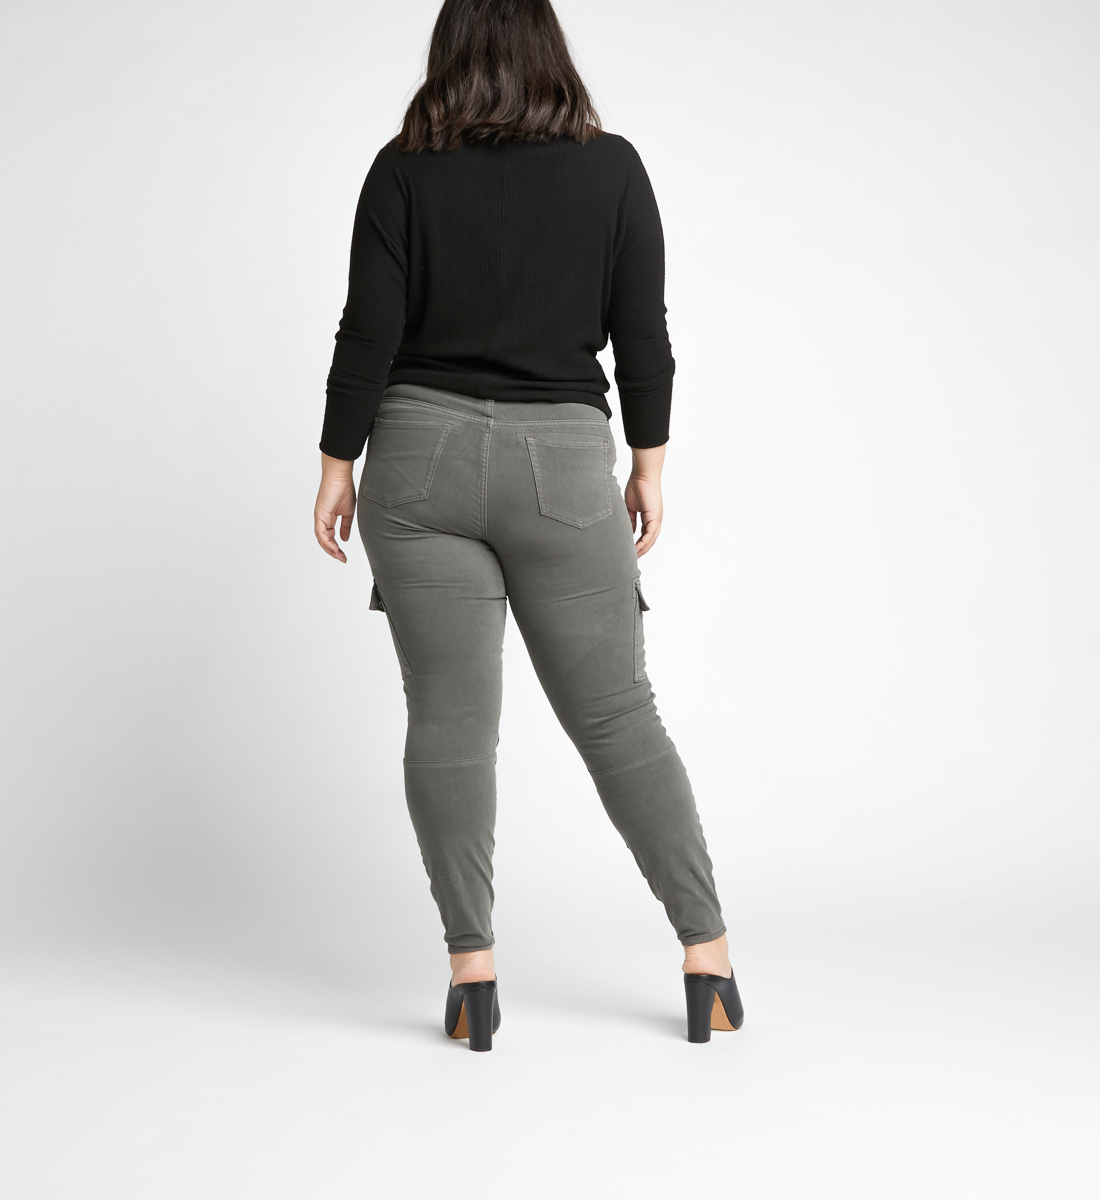 Cargo Mid Rise Skinny Leg Jeans Plus Size,Army Back